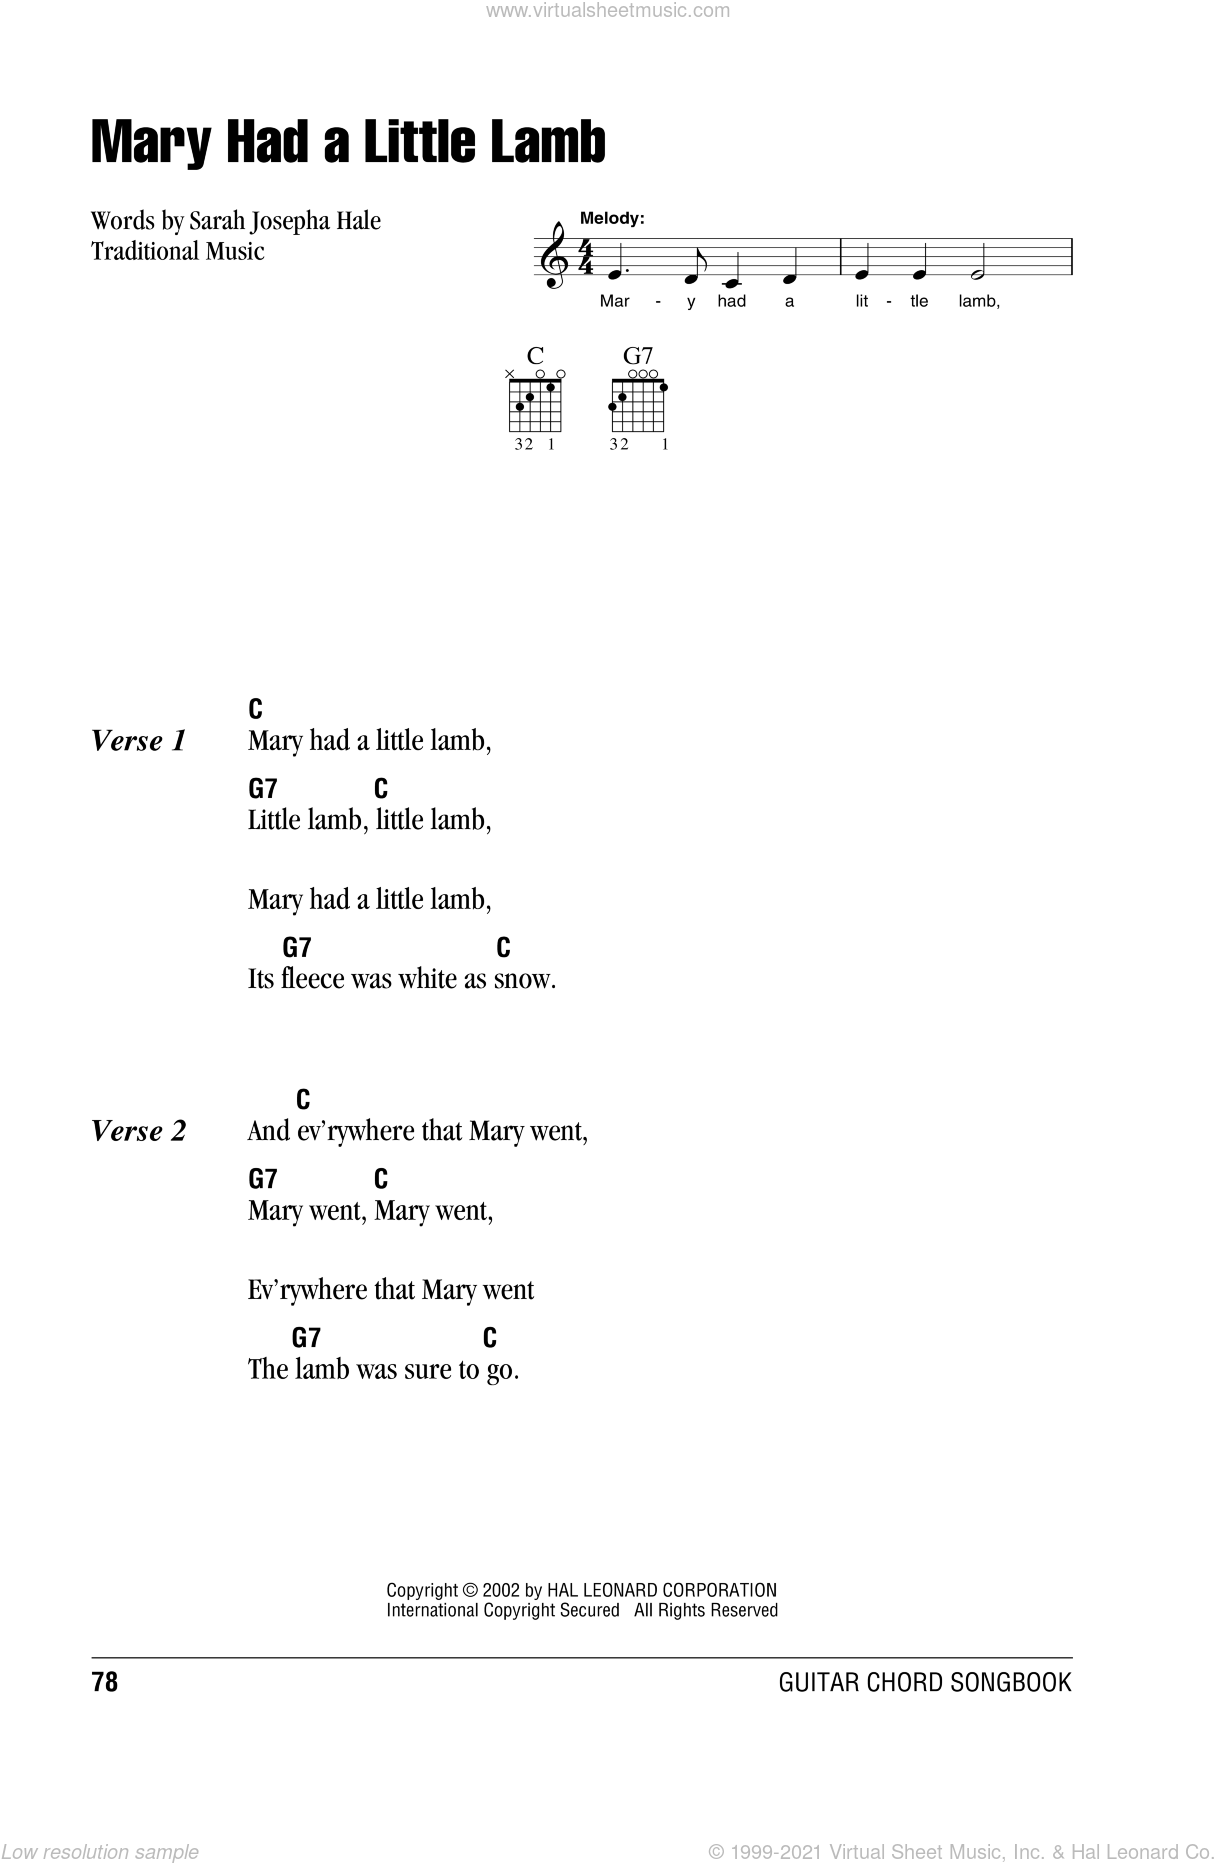 Mary Had A Little Lamb Sheet Music For Guitar Chords Pdf